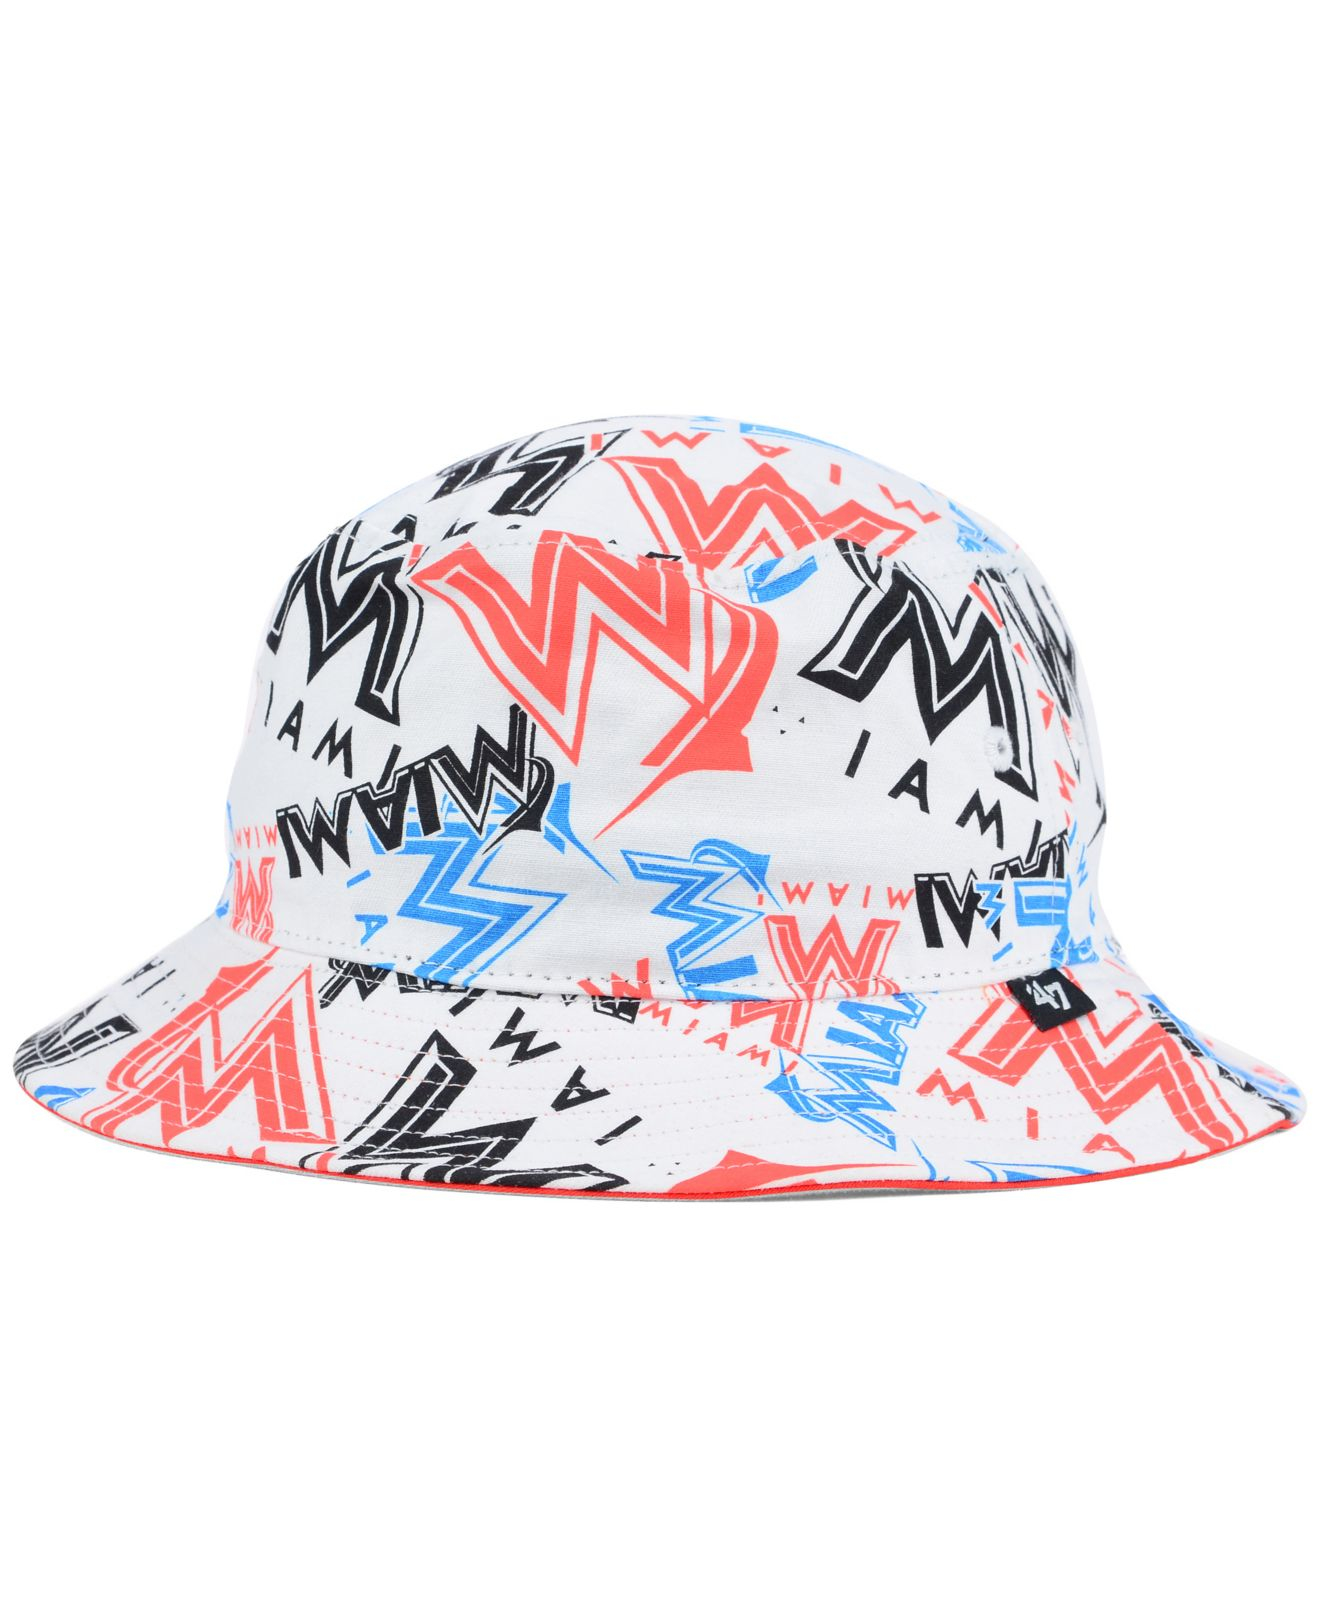 new style 66b71 2bbc7 ... uk lyst 47 brand miami marlins bravado bucket hat in white for men  4af7a 82d20